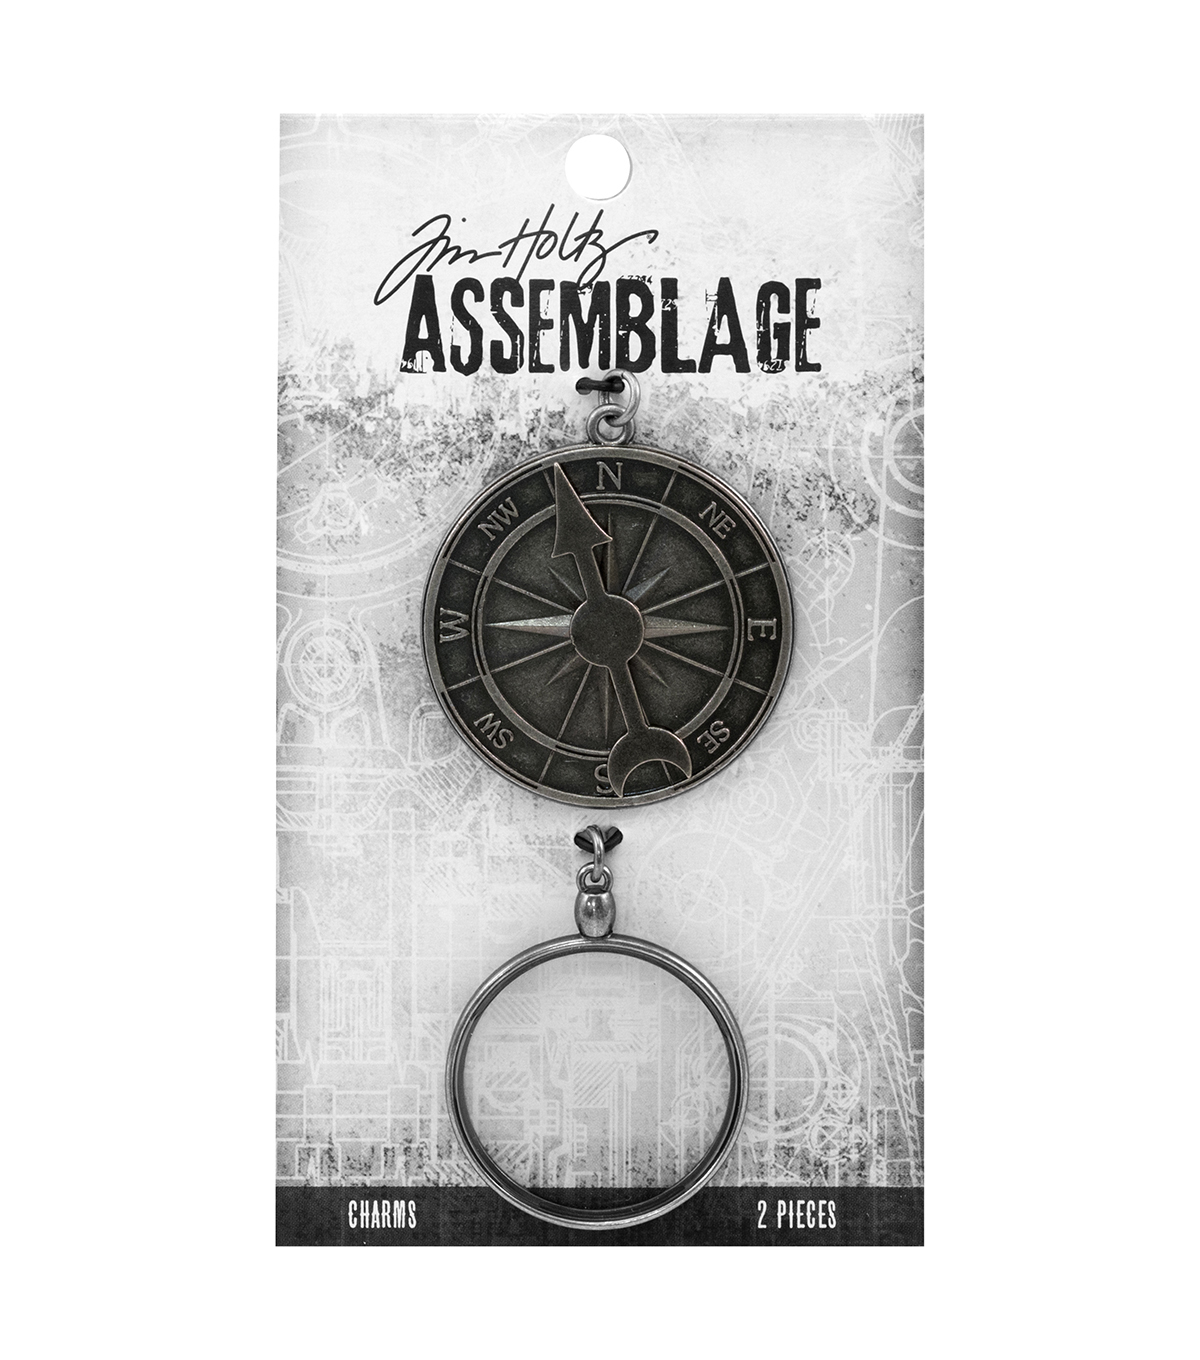 Tim Holtz Assemblage Pack of 2 Compass & Monocle Charms